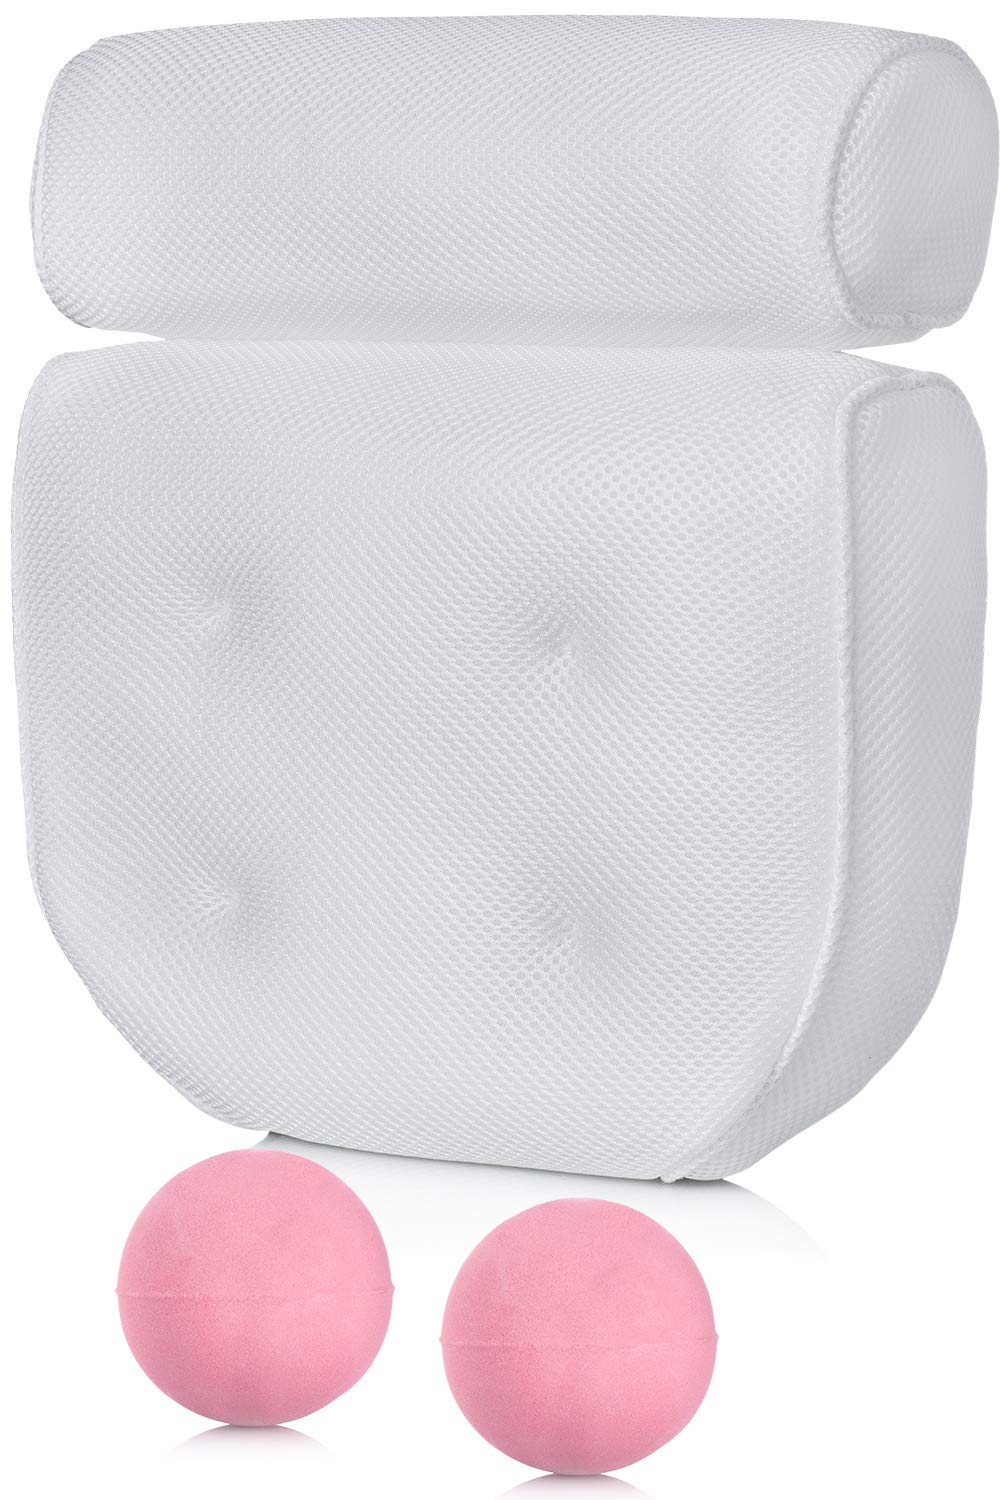 Bath Pillow for Tub with 2 Bath Bombs – Bathtub Head, Neck and Back Support – Great for Hot Tub, Spa and Jacuzzi Accessories with 4 Extra Large Suction Cups for Grip by Dr. Maya